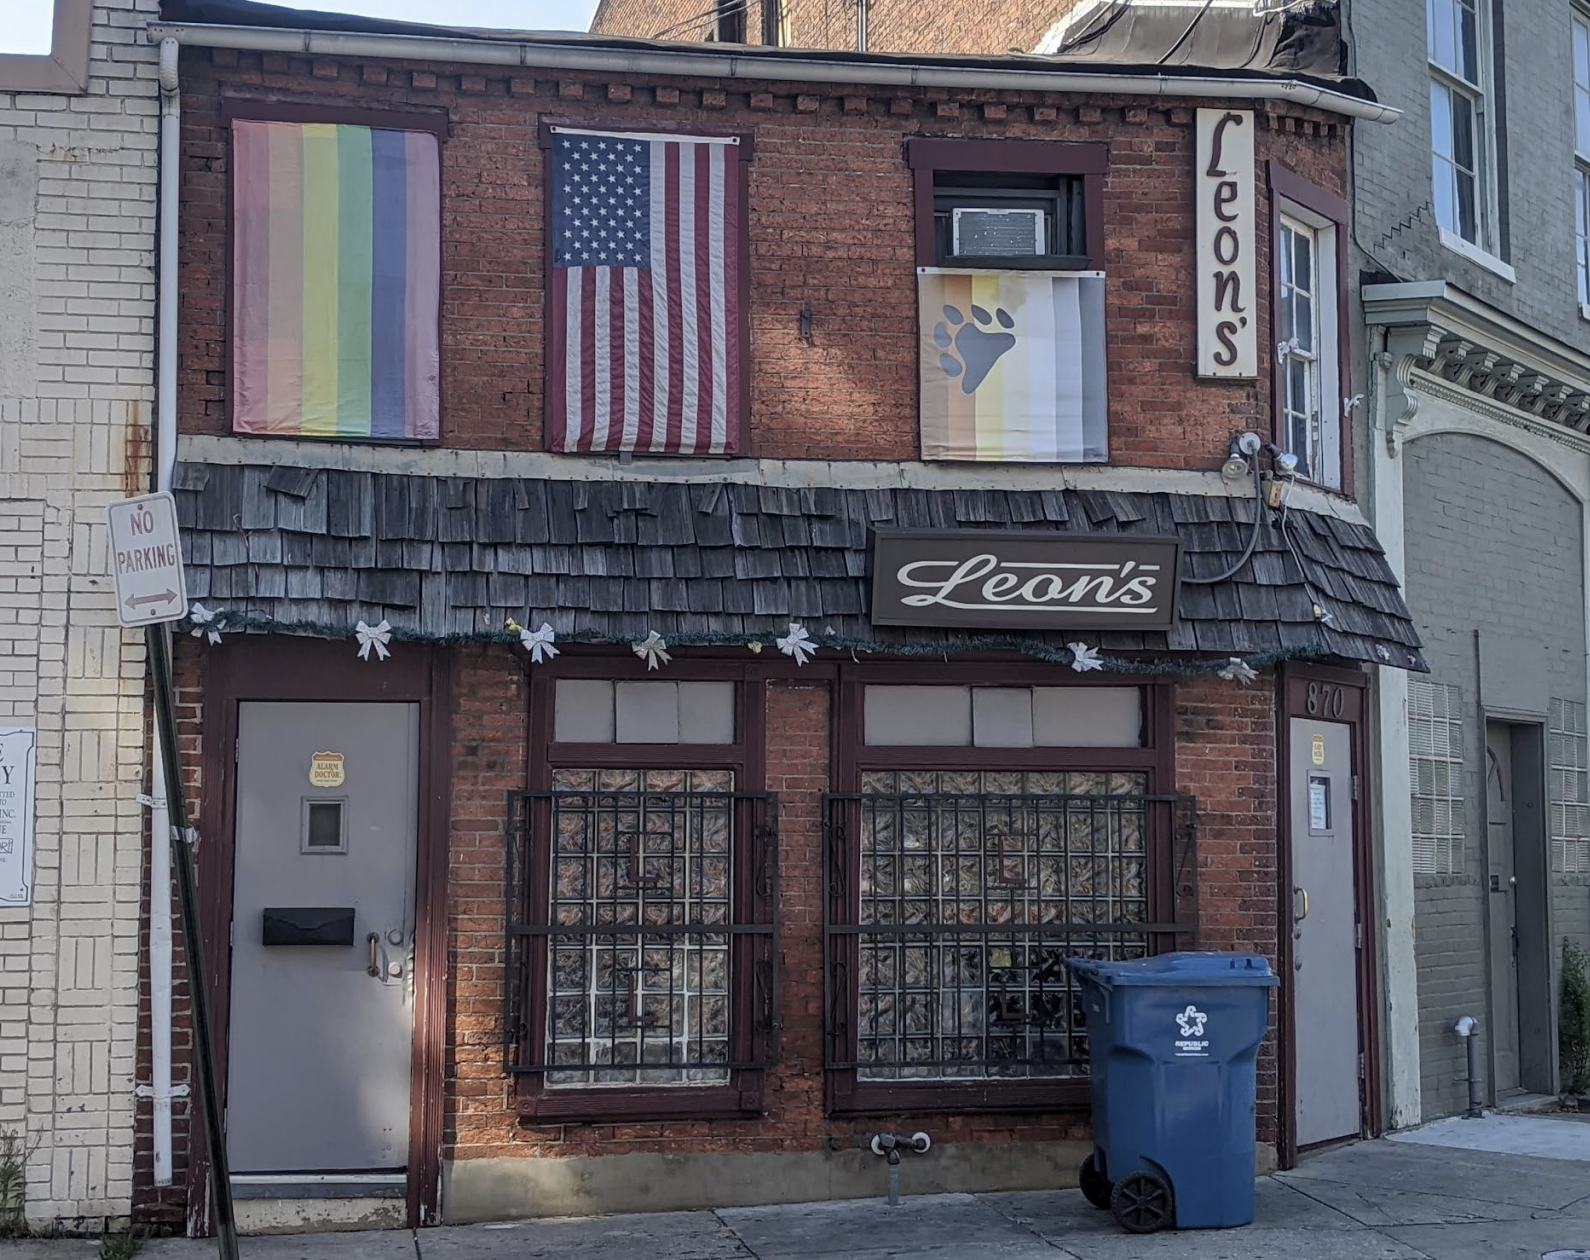 Leon's, 870 Park Ave in Baltimore Maryland is the oldest continually operating gay bar in Baltimore; it has been a gay bar since 1957.